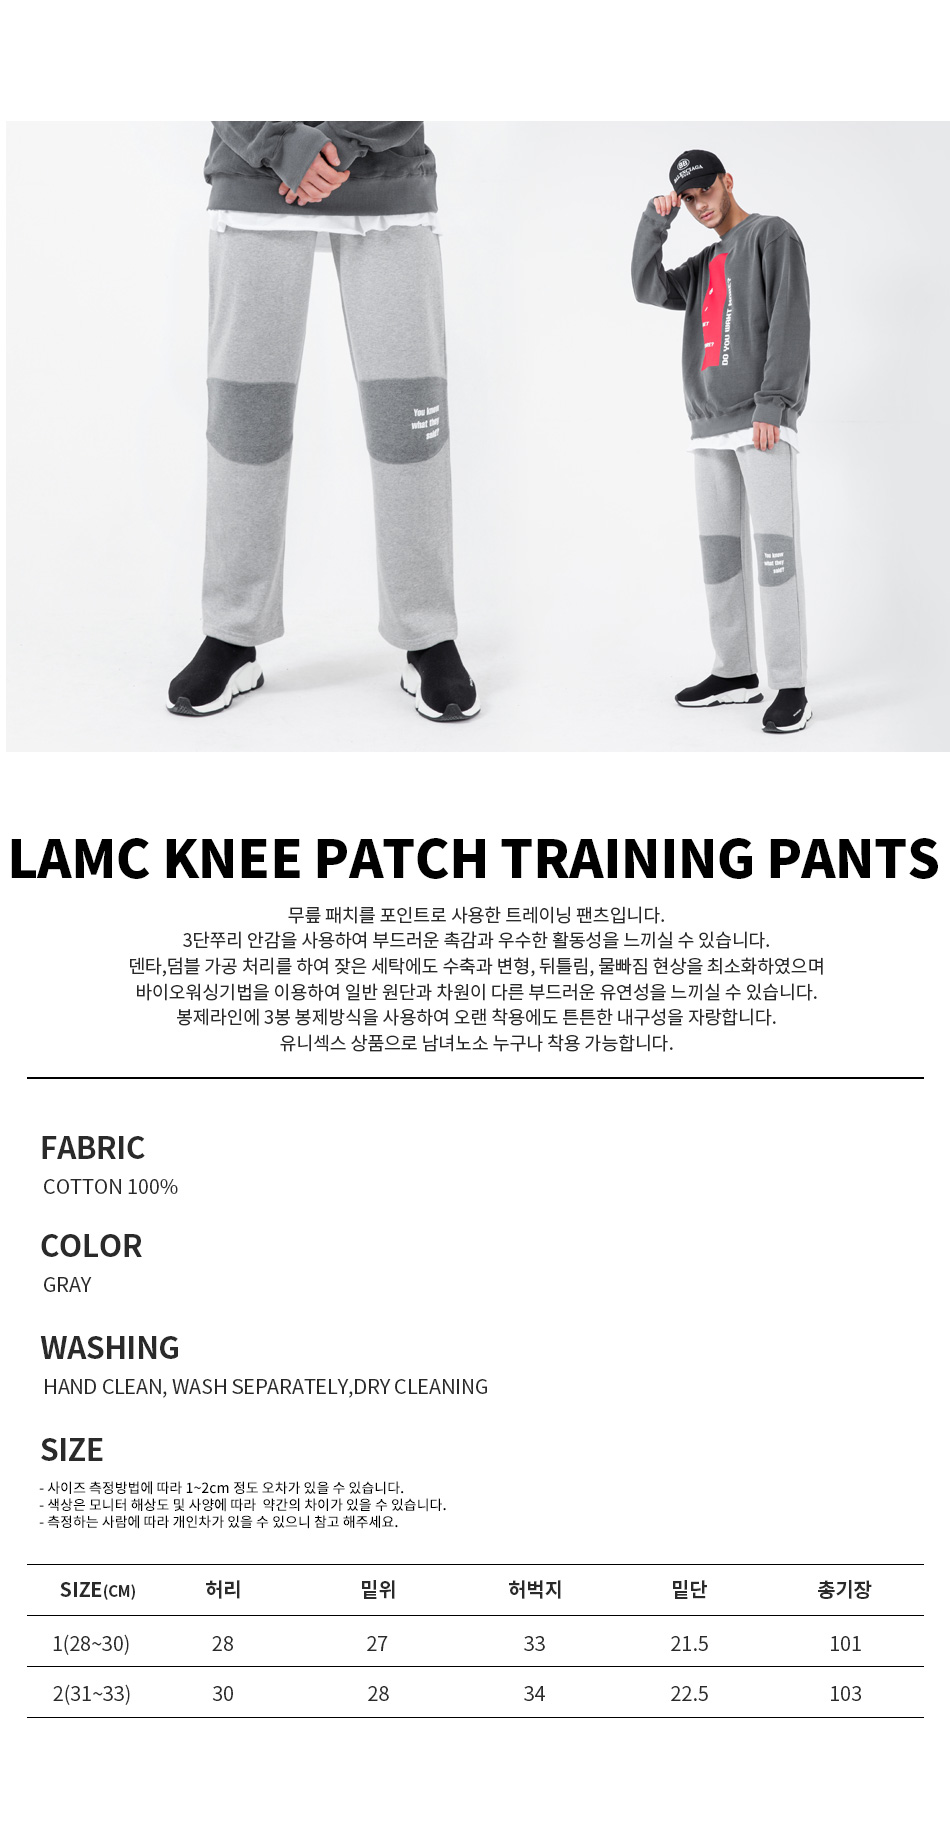 라모드치프 LAMC KNEE PATCH TRAINING PANTS (GRAY)